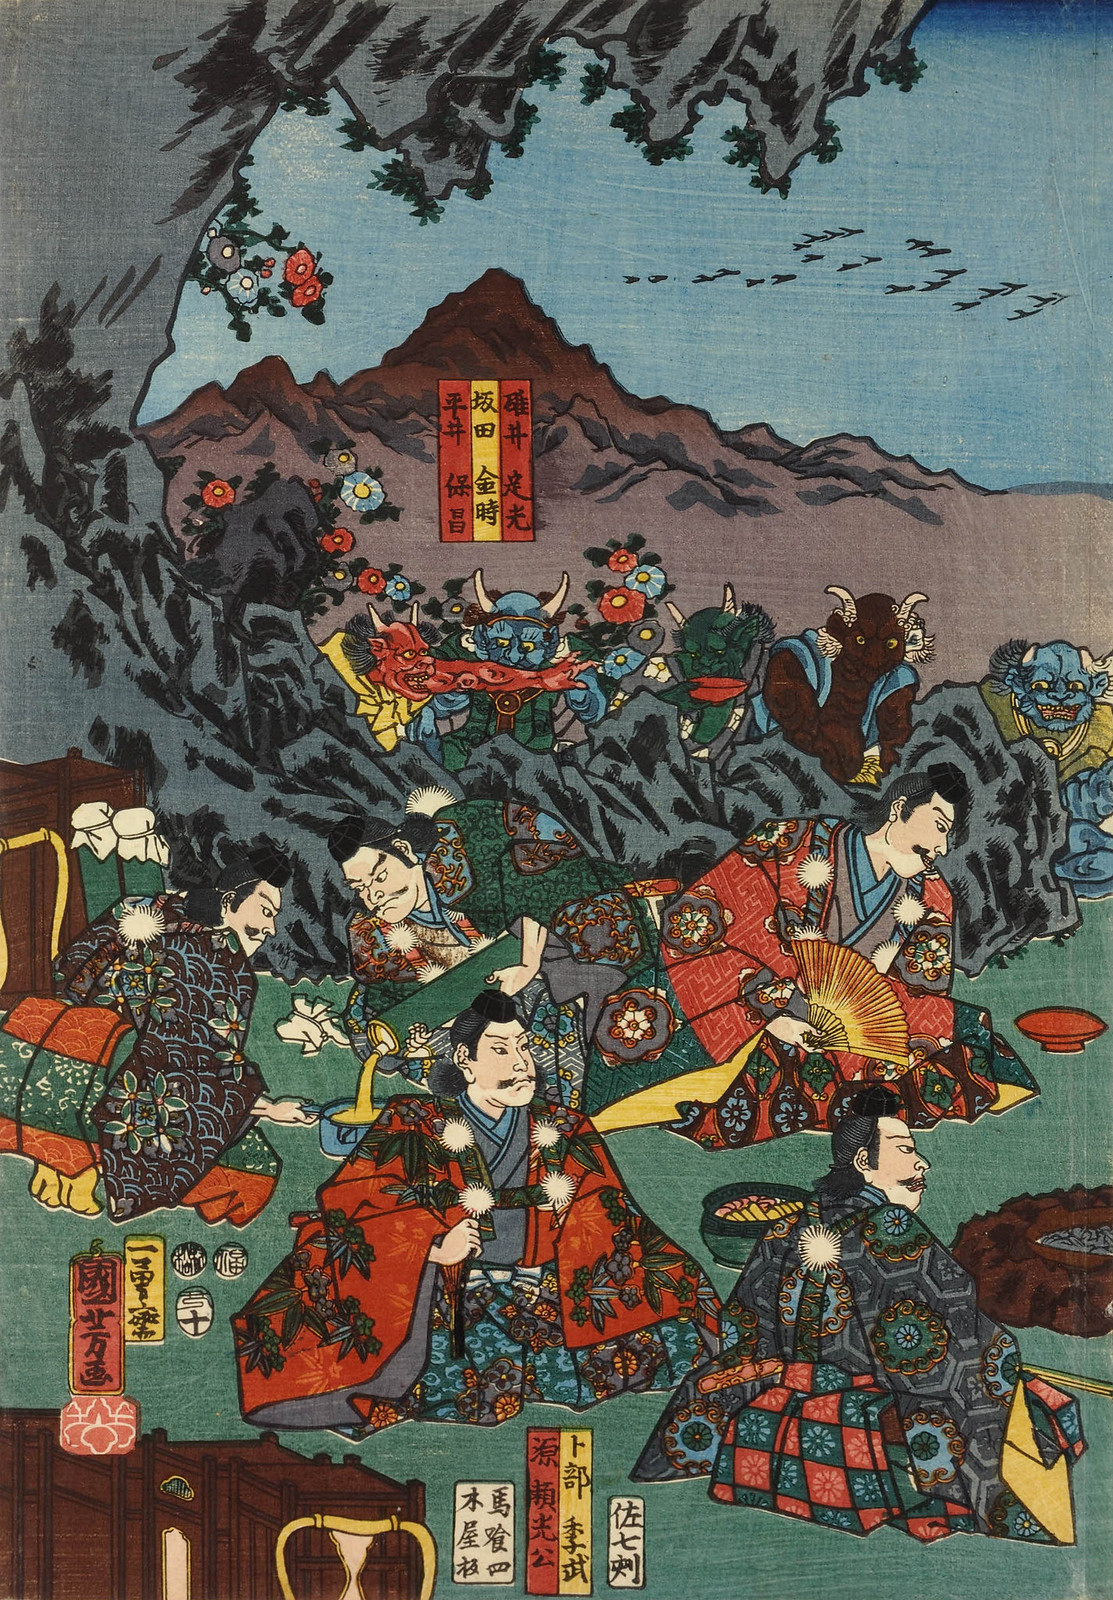 Utagawa Kuniyoshi - Raiko and his retainers entertaining the Shuten-doji and his demons with sake and dancing, 1853 (left panel)